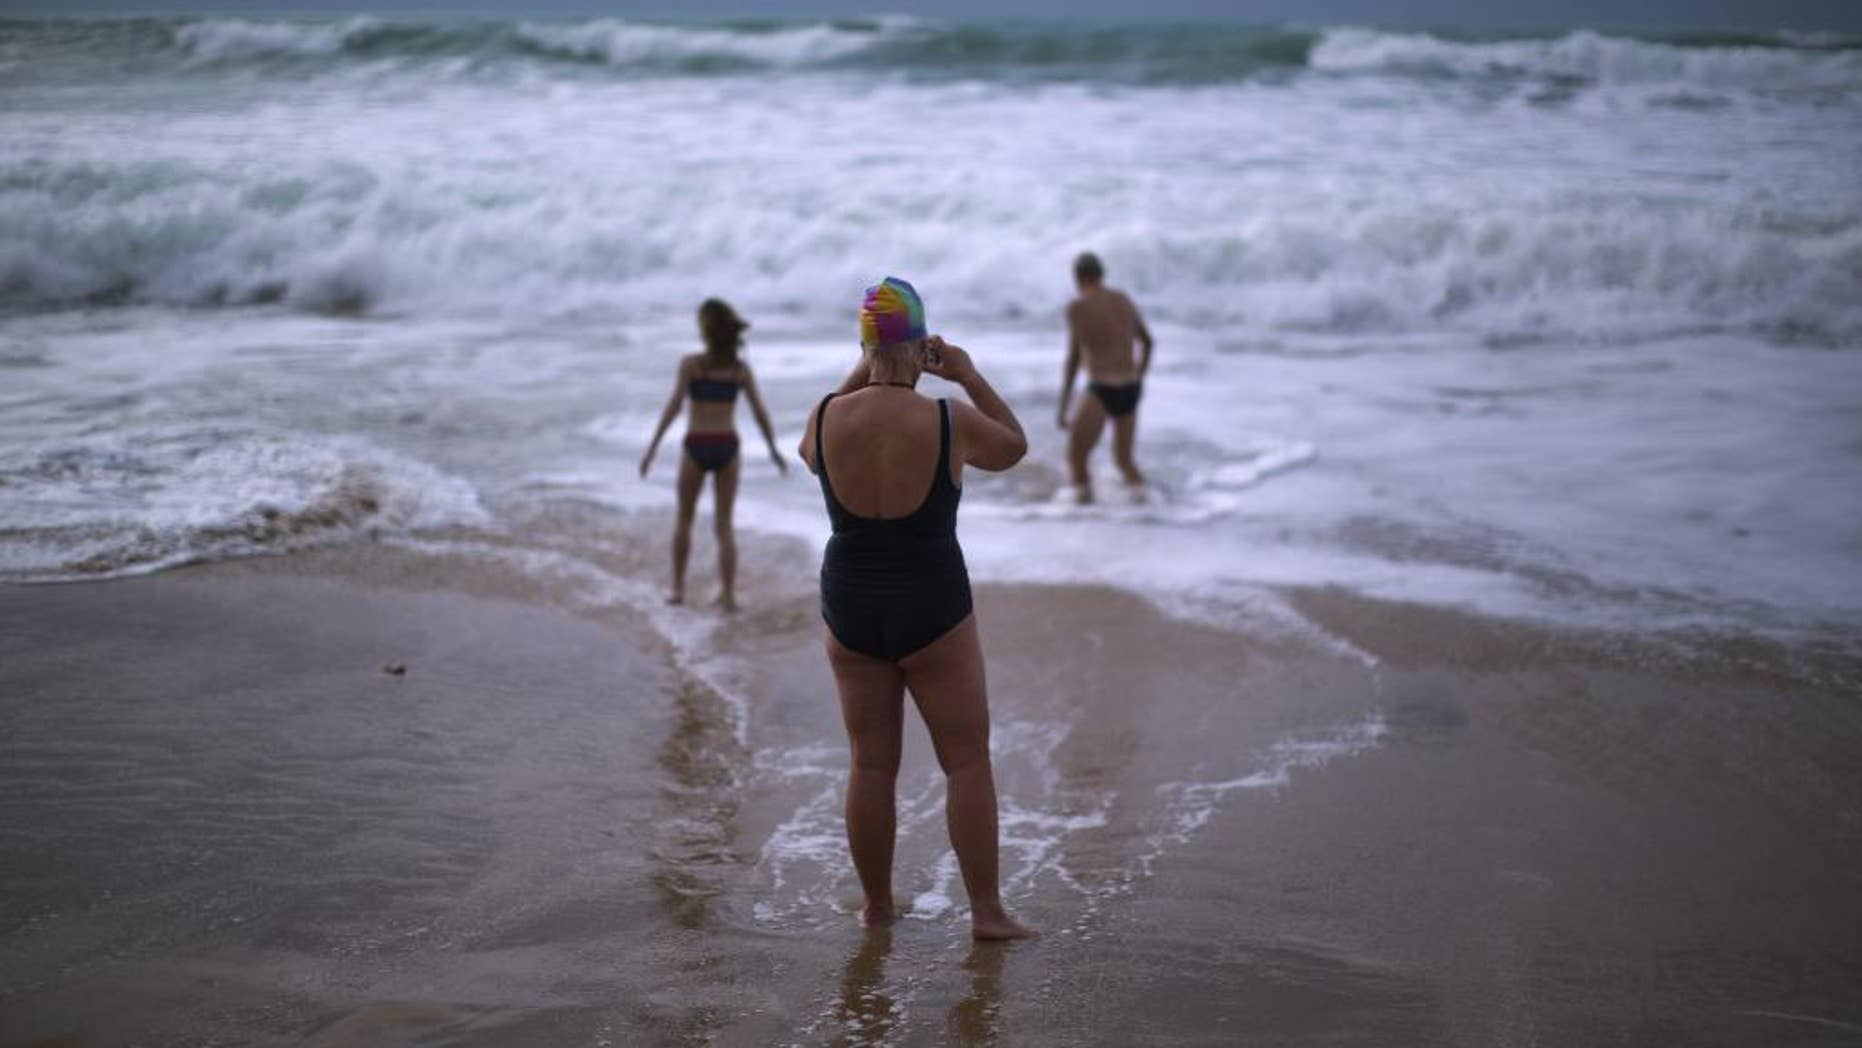 FILE- In this Jan. 1, 2014 file photo, German tourists walk on the seashore as one of them takes a photograph, after swimming in the Atlantic ocean in a beach in Cadiz, southwest Spain. Nudists have lost a seven-year legal battle for access to a popular tourist resort beach on Spain's southwestern tip. (AP Photo/Emilio Morenatti, File)